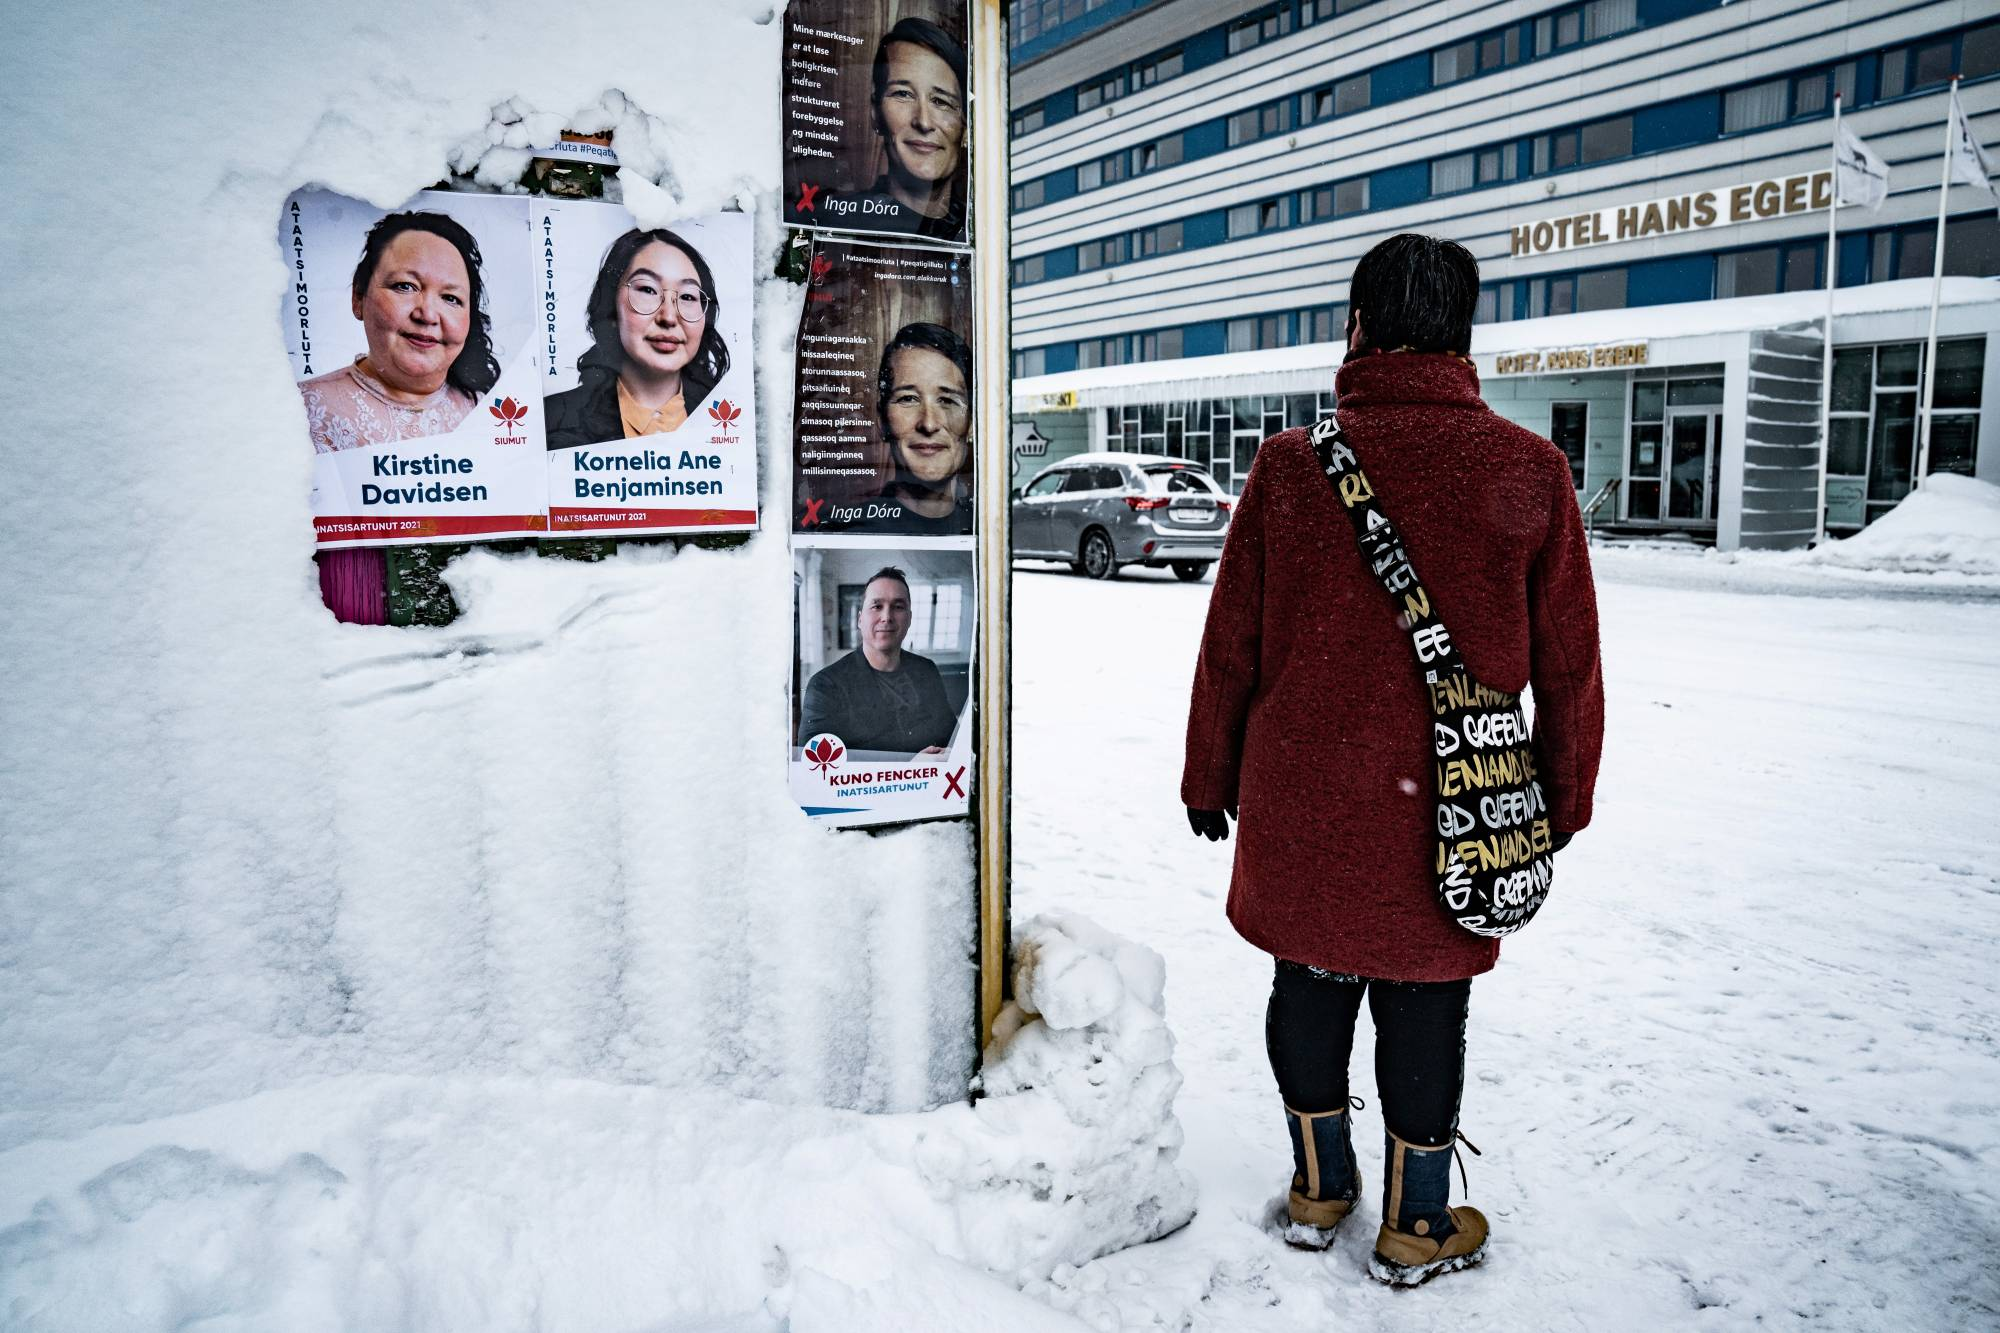 Electoral posters are displayed ahead of the April 6 parliamentary election, in Nuuk, Greenland.  | RITZAU SCANPIX / VIA REUTERS